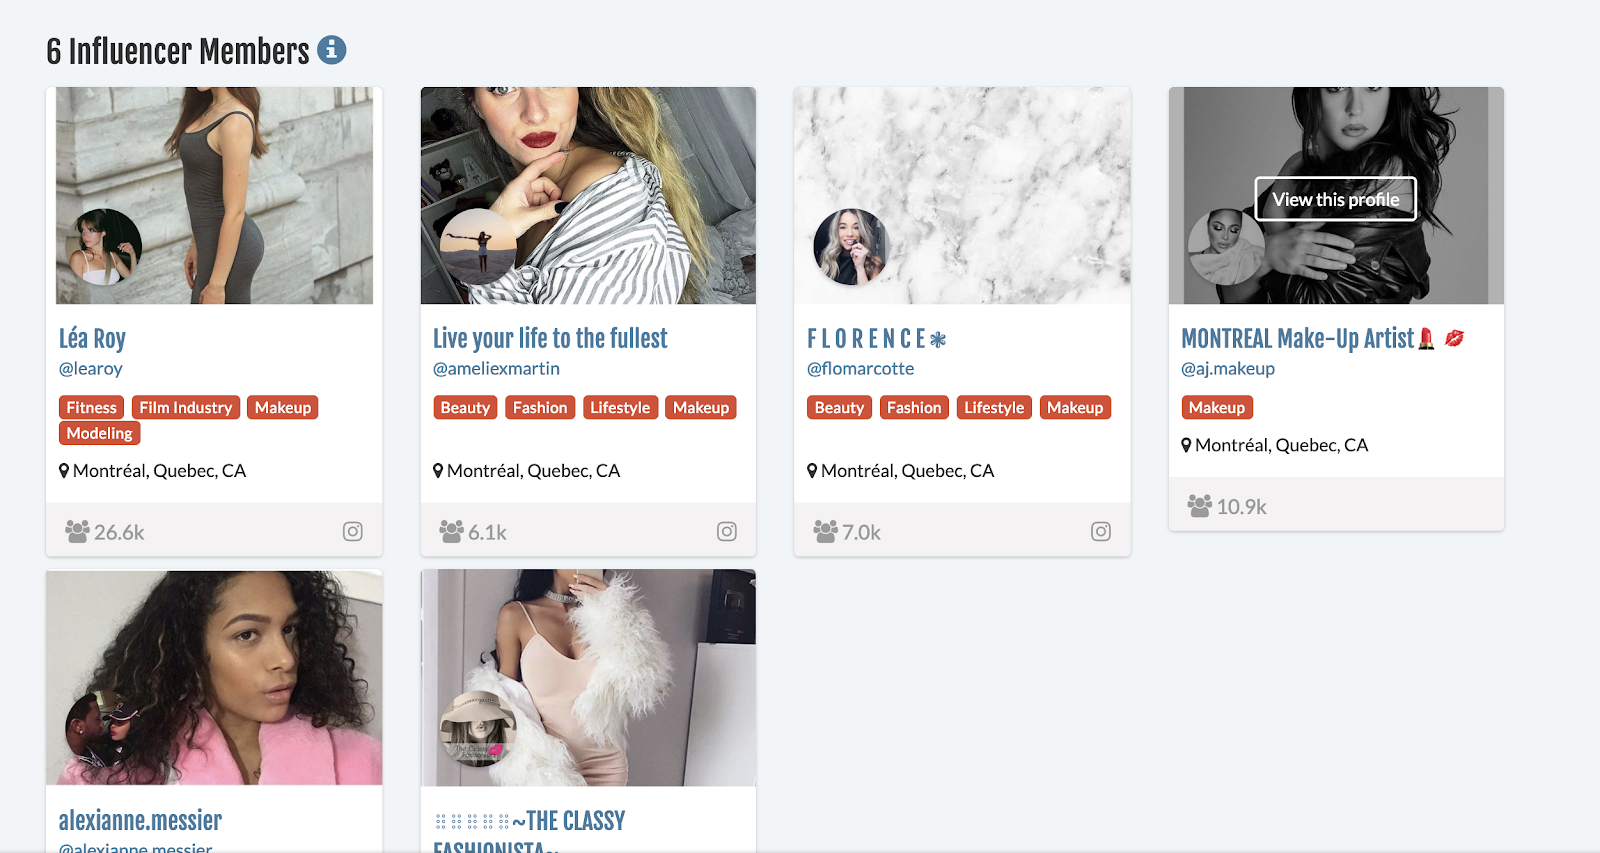 tool results of finding influencers